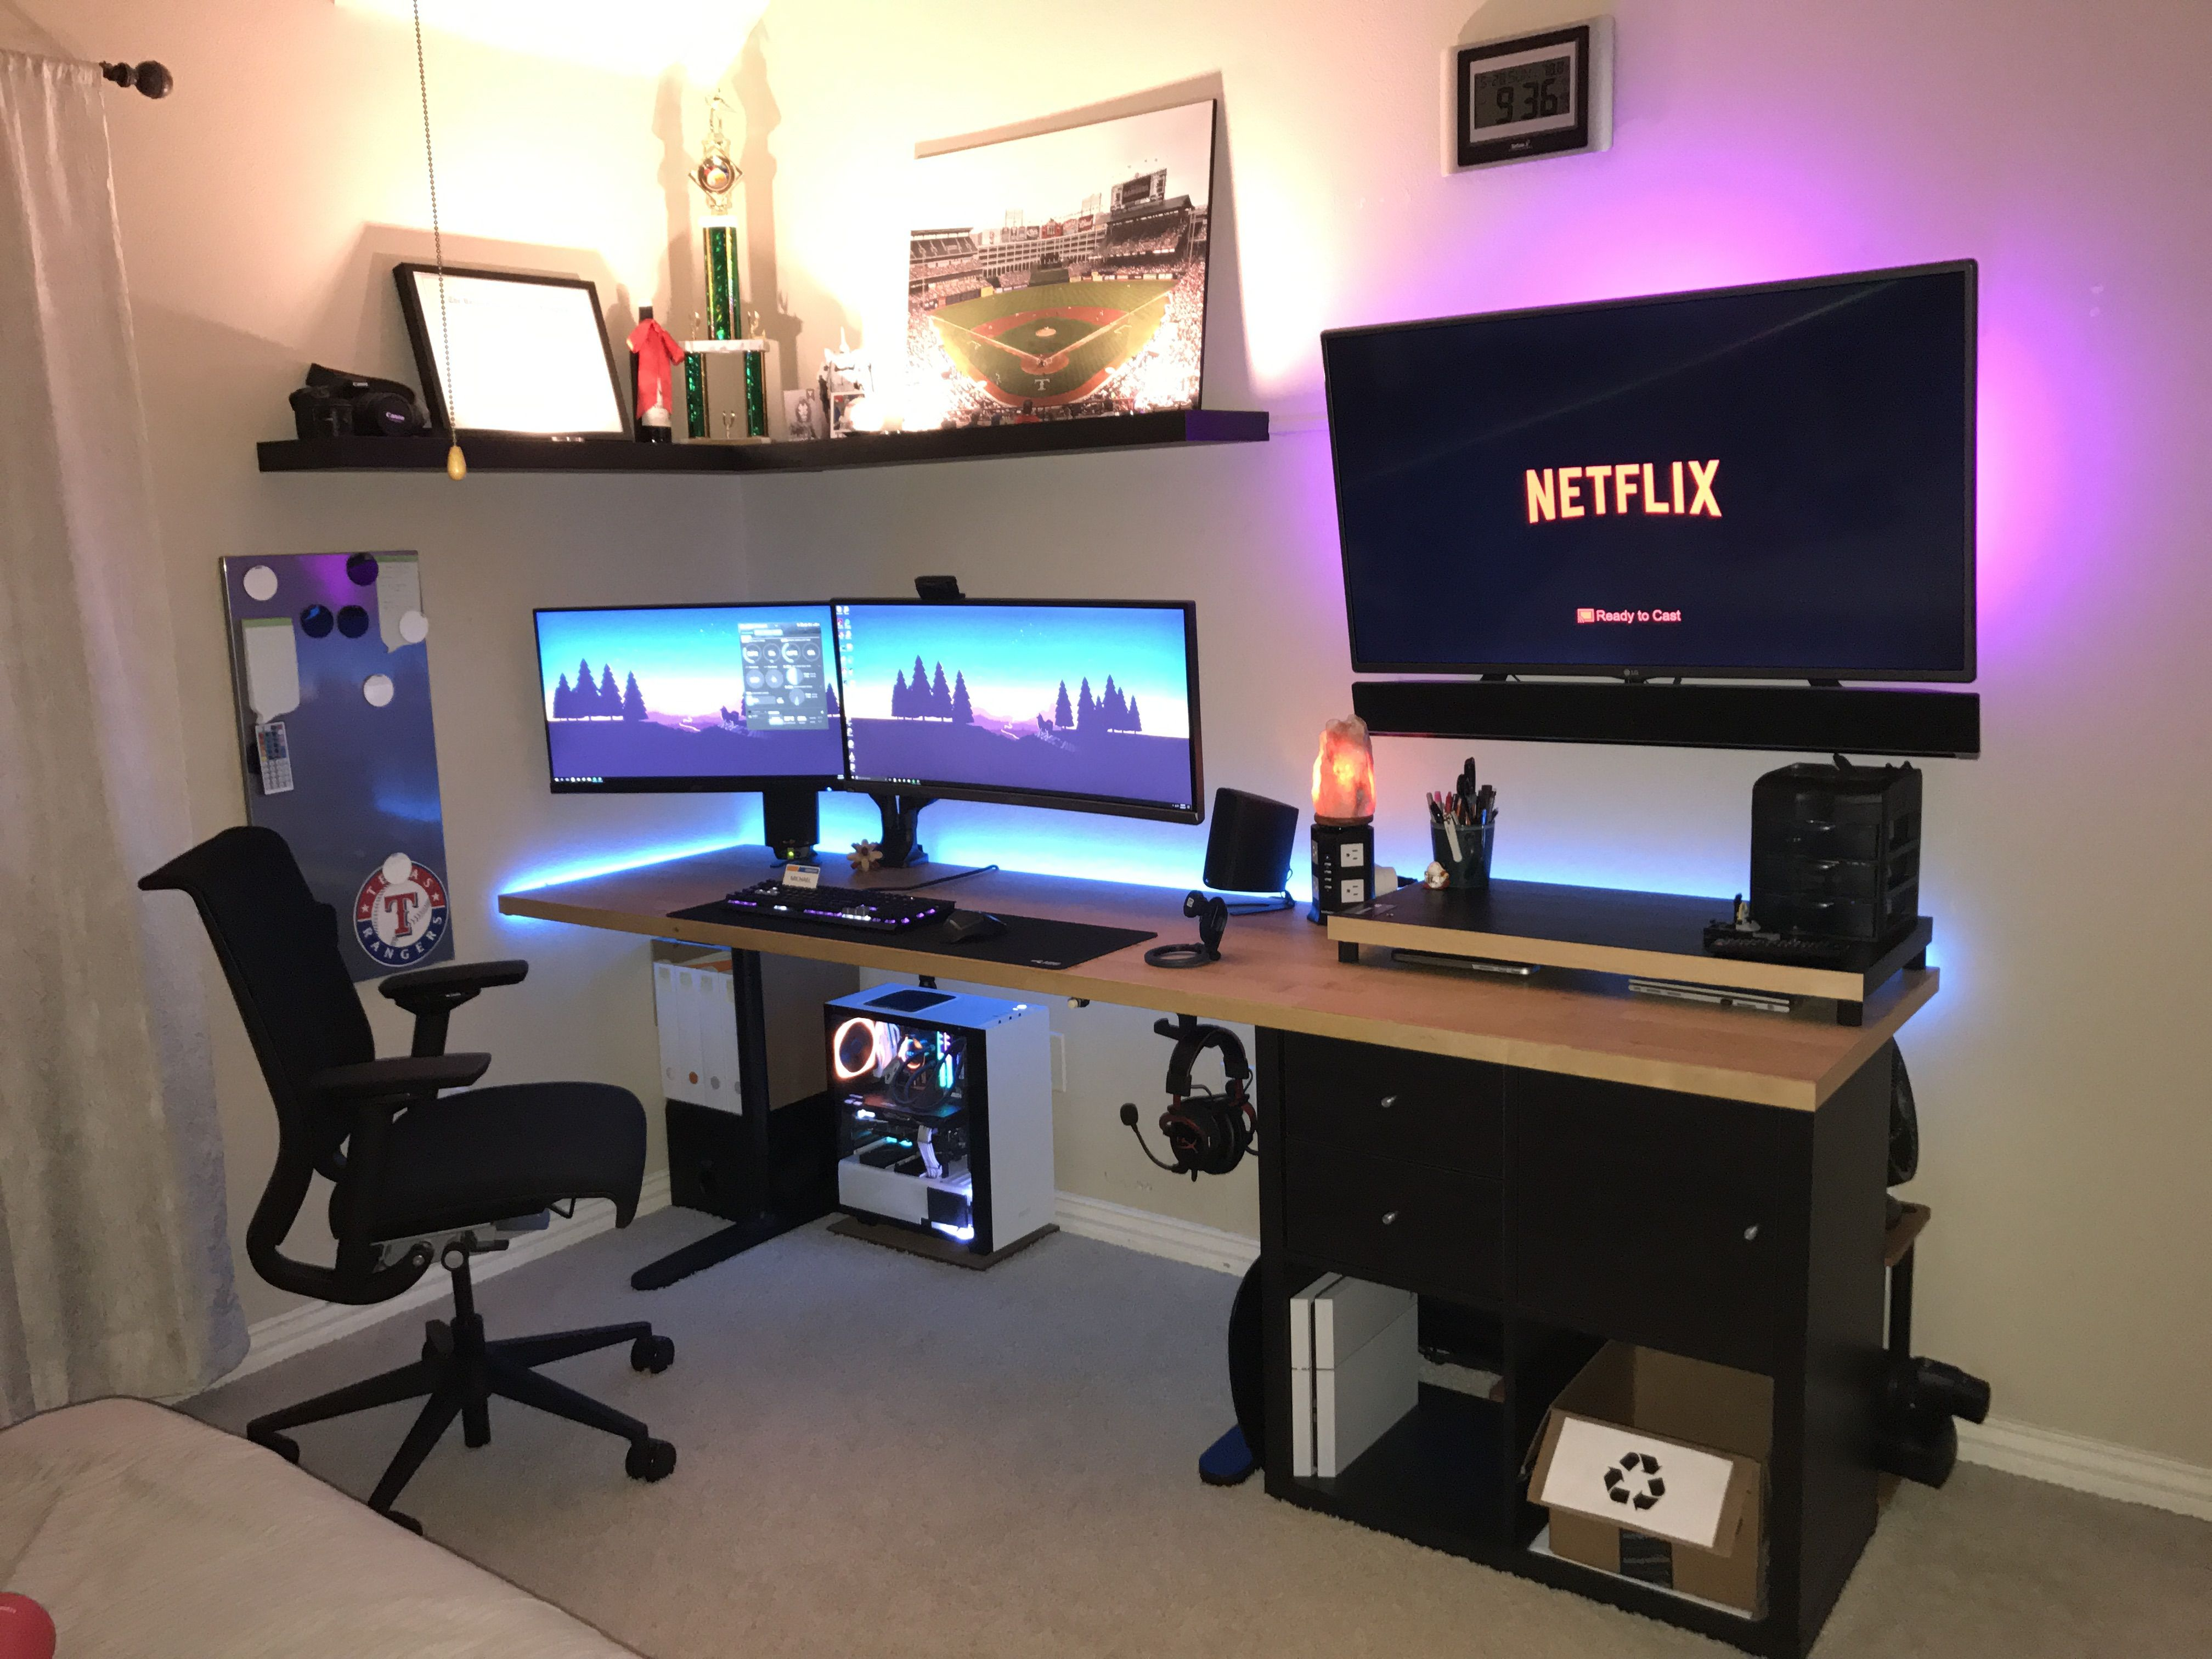 Whether you play on a console or a pc, we've got the details you need to make sure your hardware is ready to rumble when you are. Pin by Valeria Lara on News   Room setup, Game room design ...